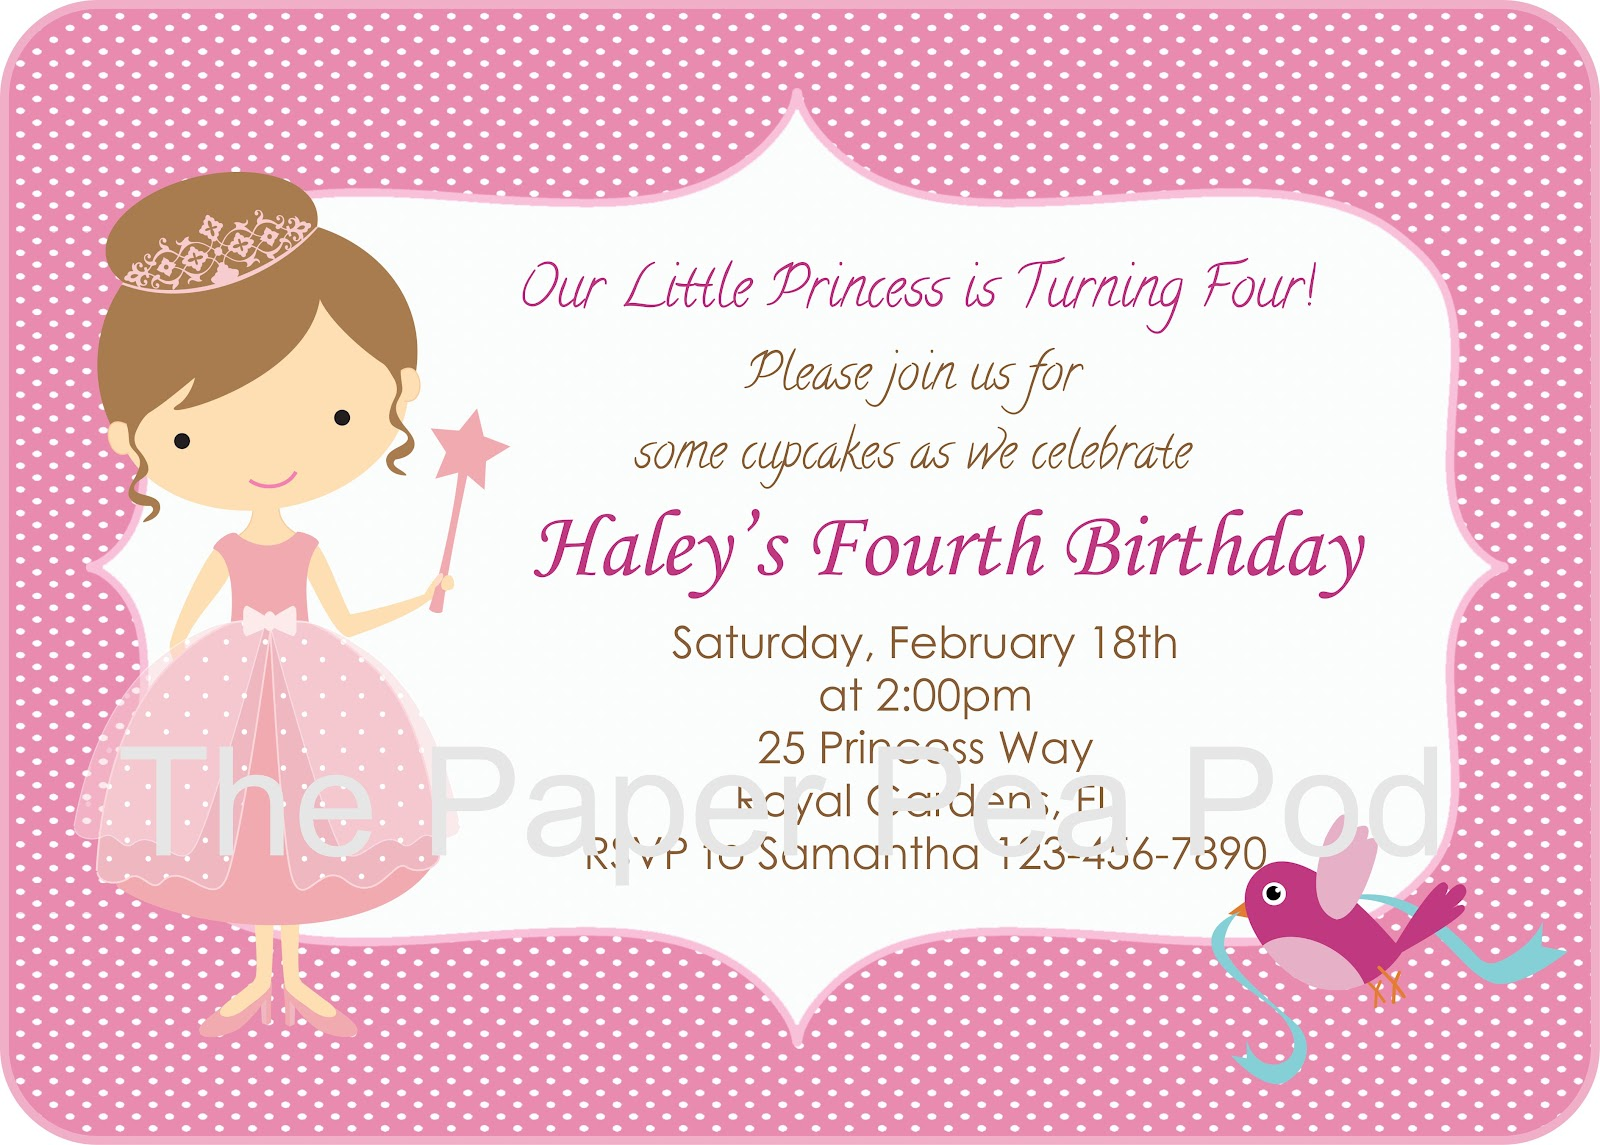 princess birthday party invitations template - Dorit.mercatodos.co